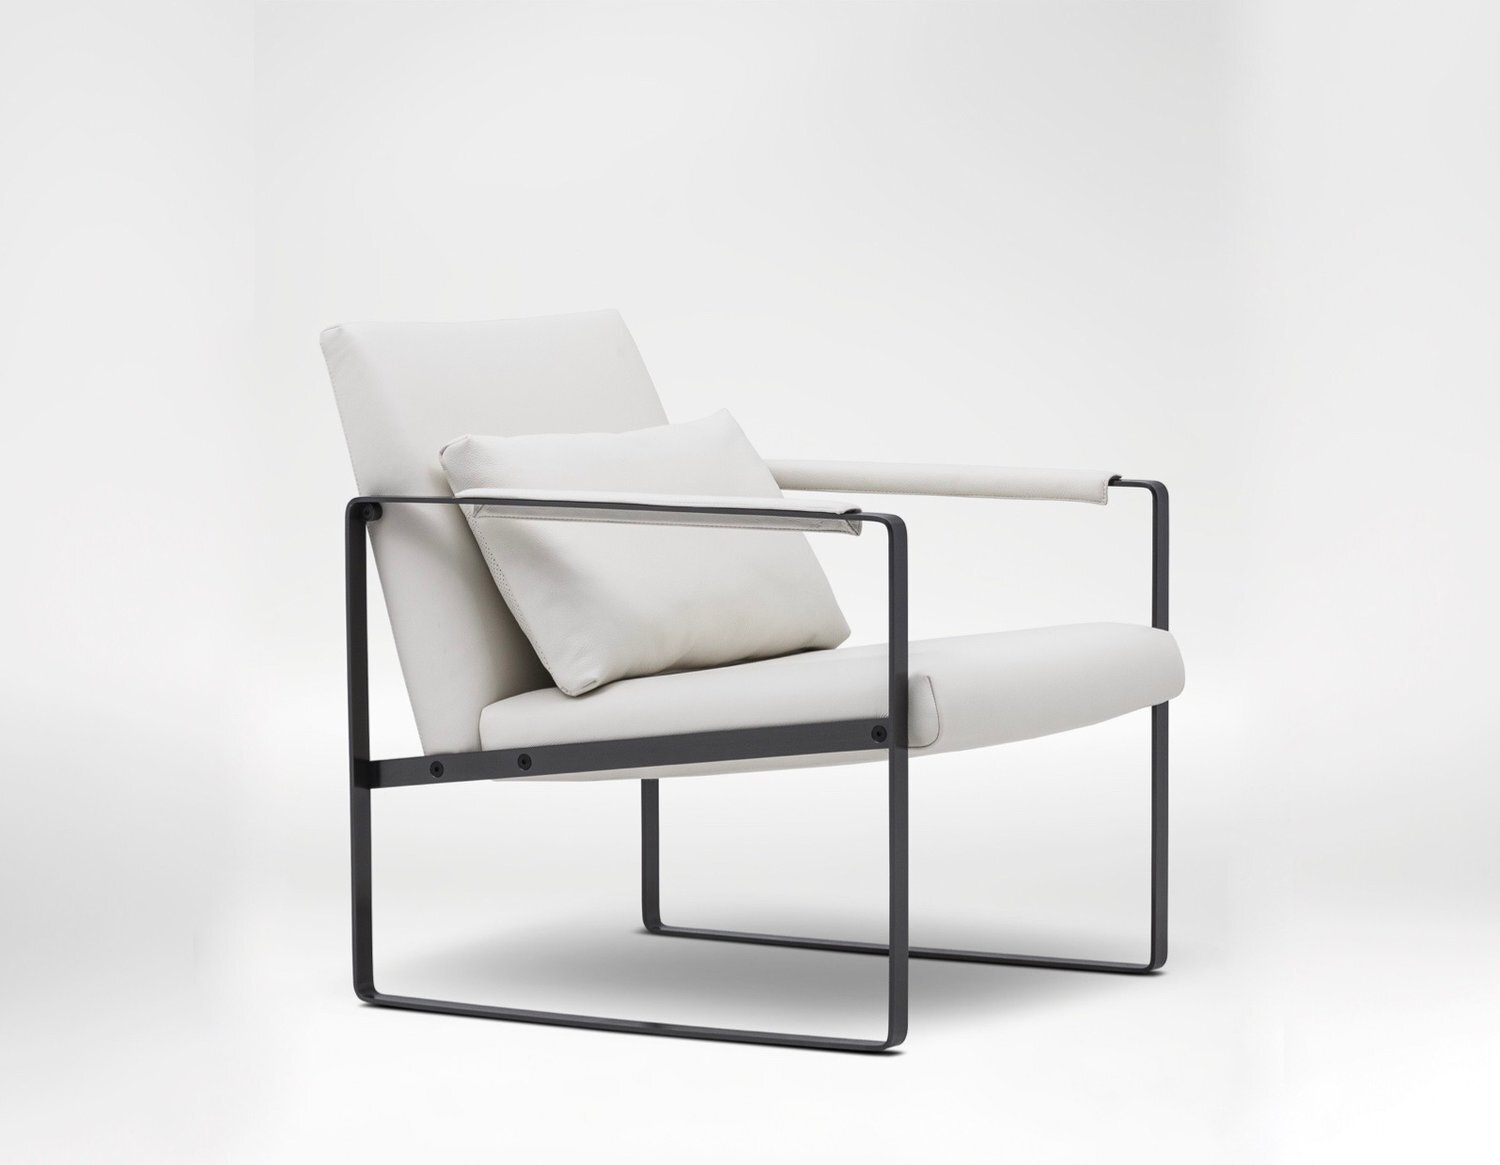 Leman Small Chair - The Leman Lounge Chair is a showroom favourite with comfortable, deep seating and striking design.